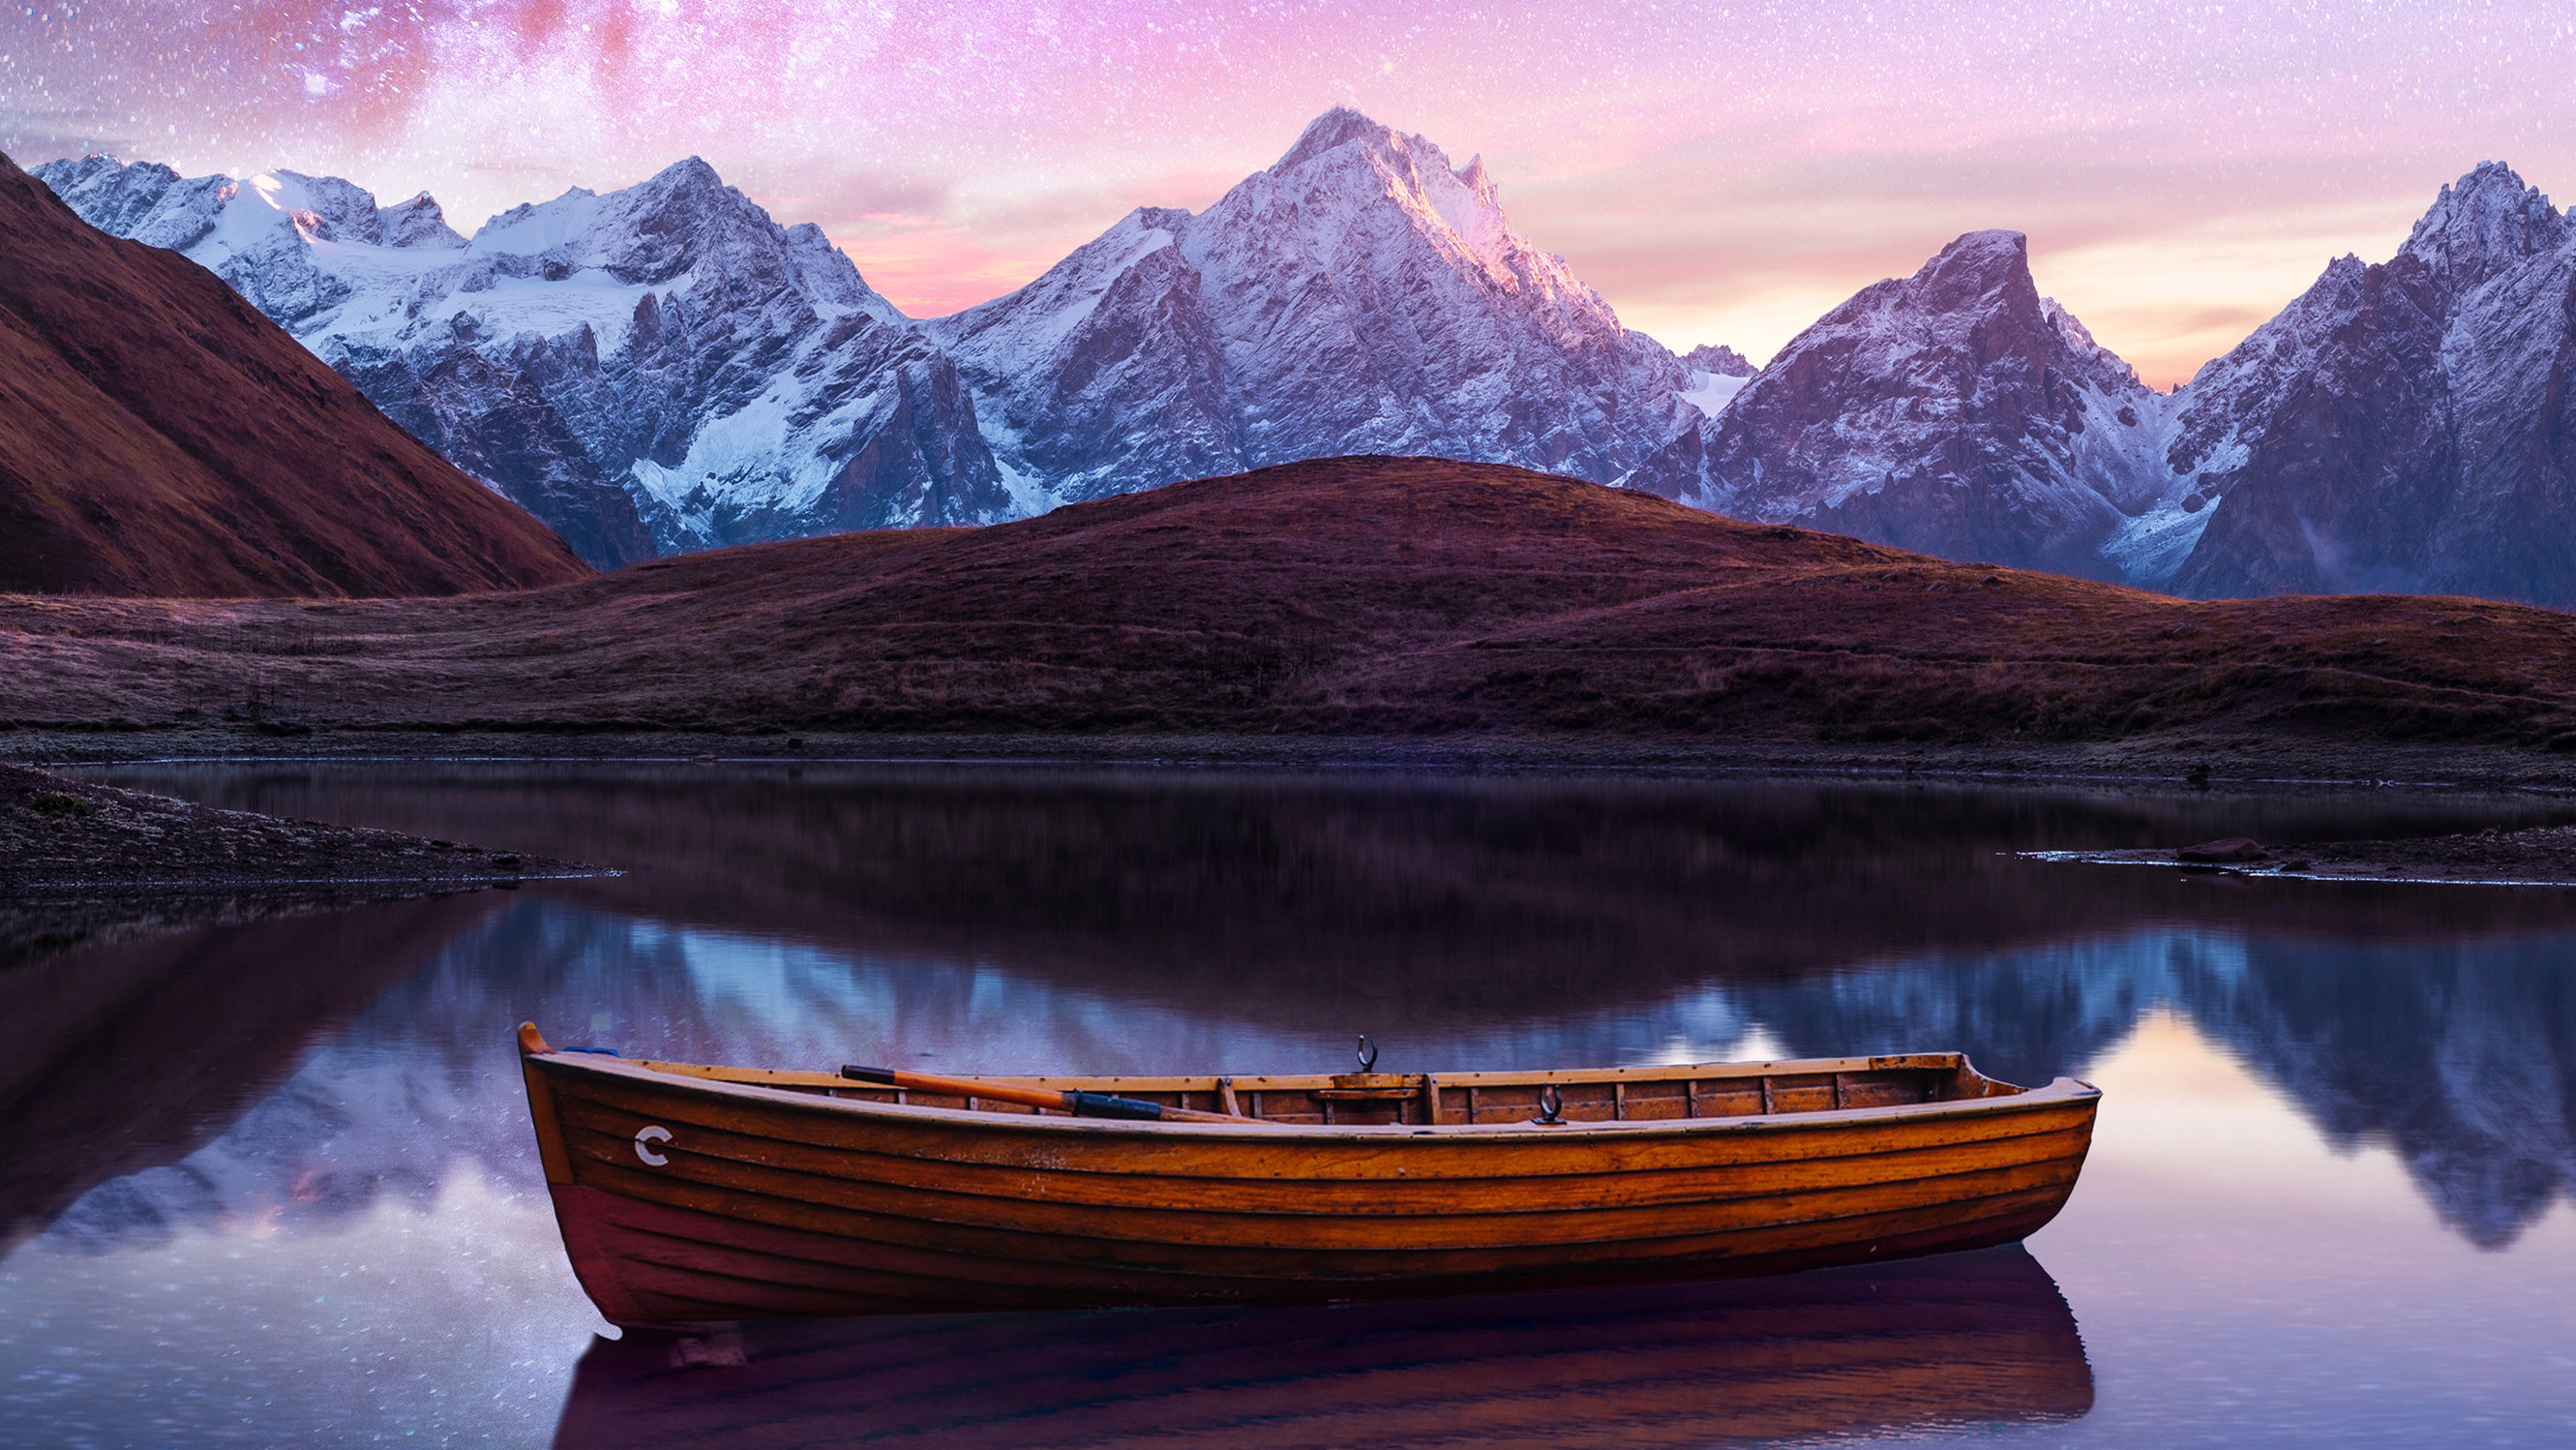 Boat starry night sky hd nature 4k wallpapers images - Starry sky 4k ...